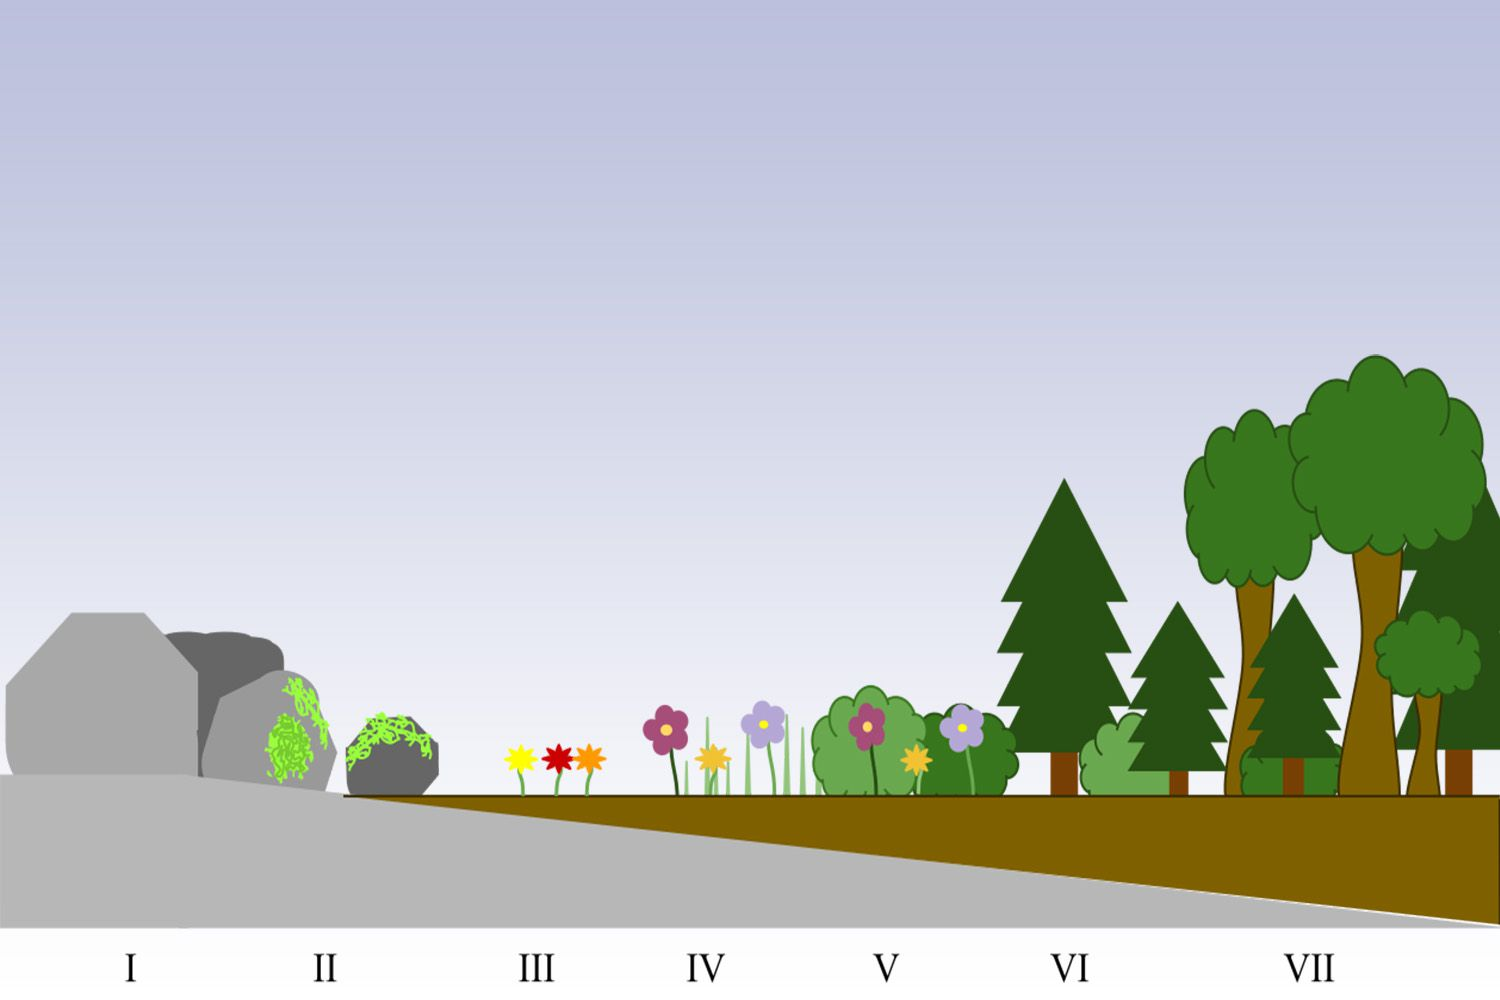 Stages of primary succession